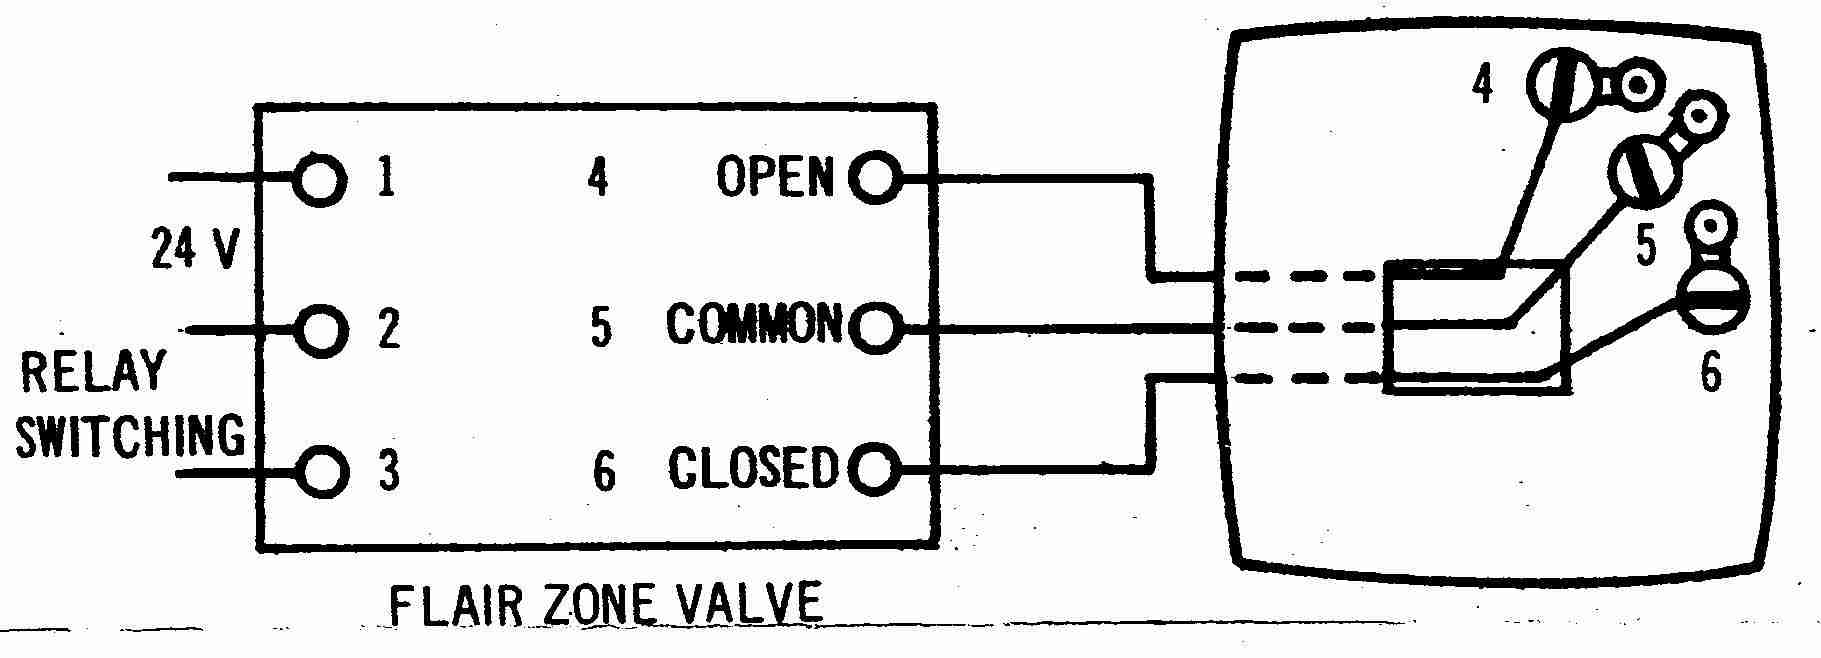 Zone Valve Wiring Installation & Instructions Guide To Heating Zone Valve  Sensor 3 Zone Valves Wiring